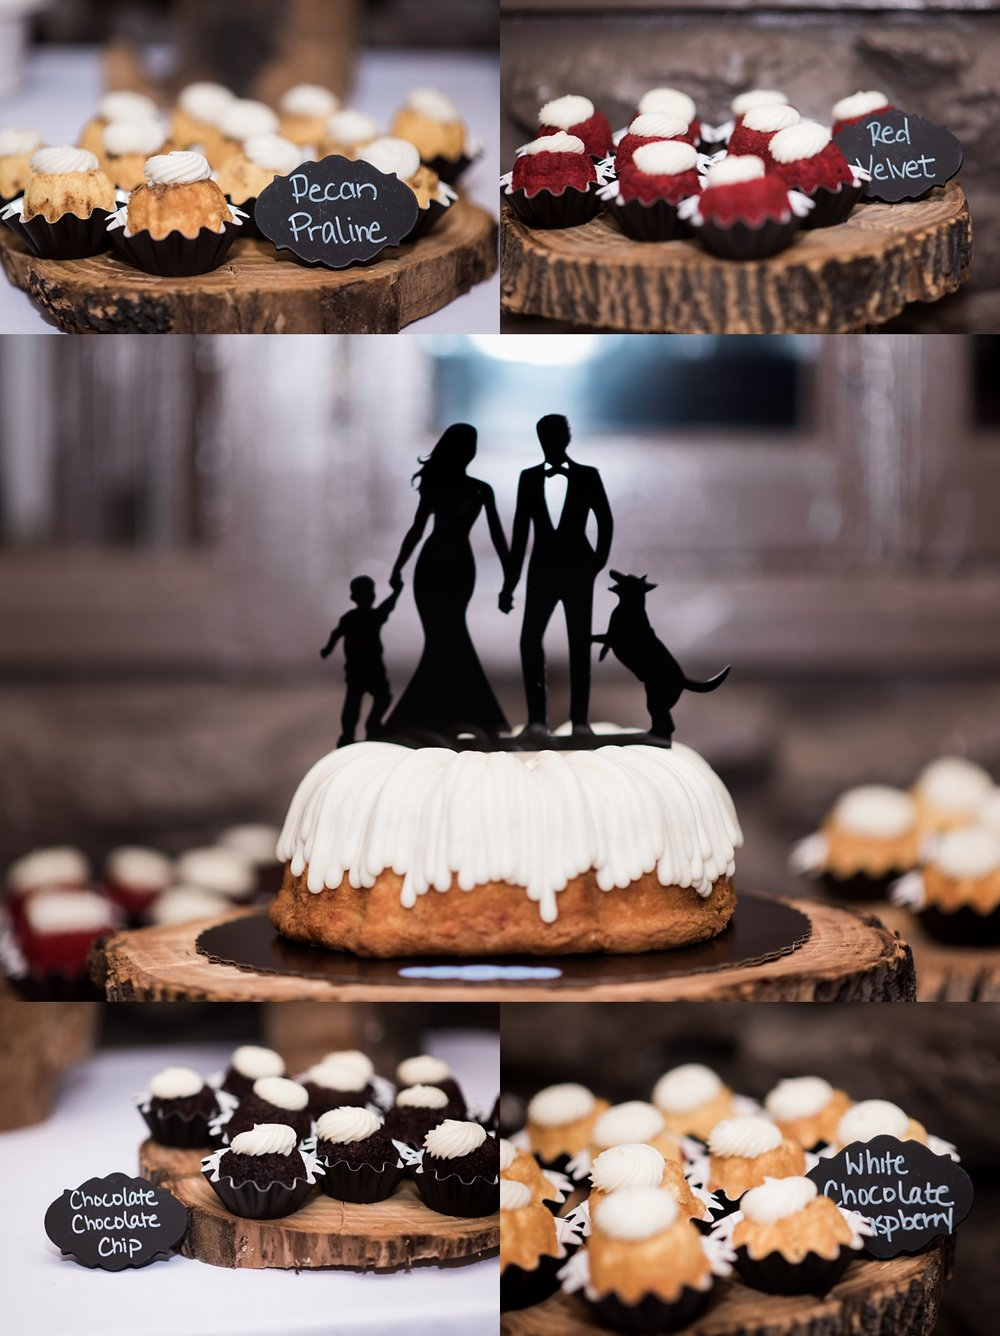 I loved that Amanda and James chose Nothing Bundt Cakes for their wedding cake. These were so delicious, too.